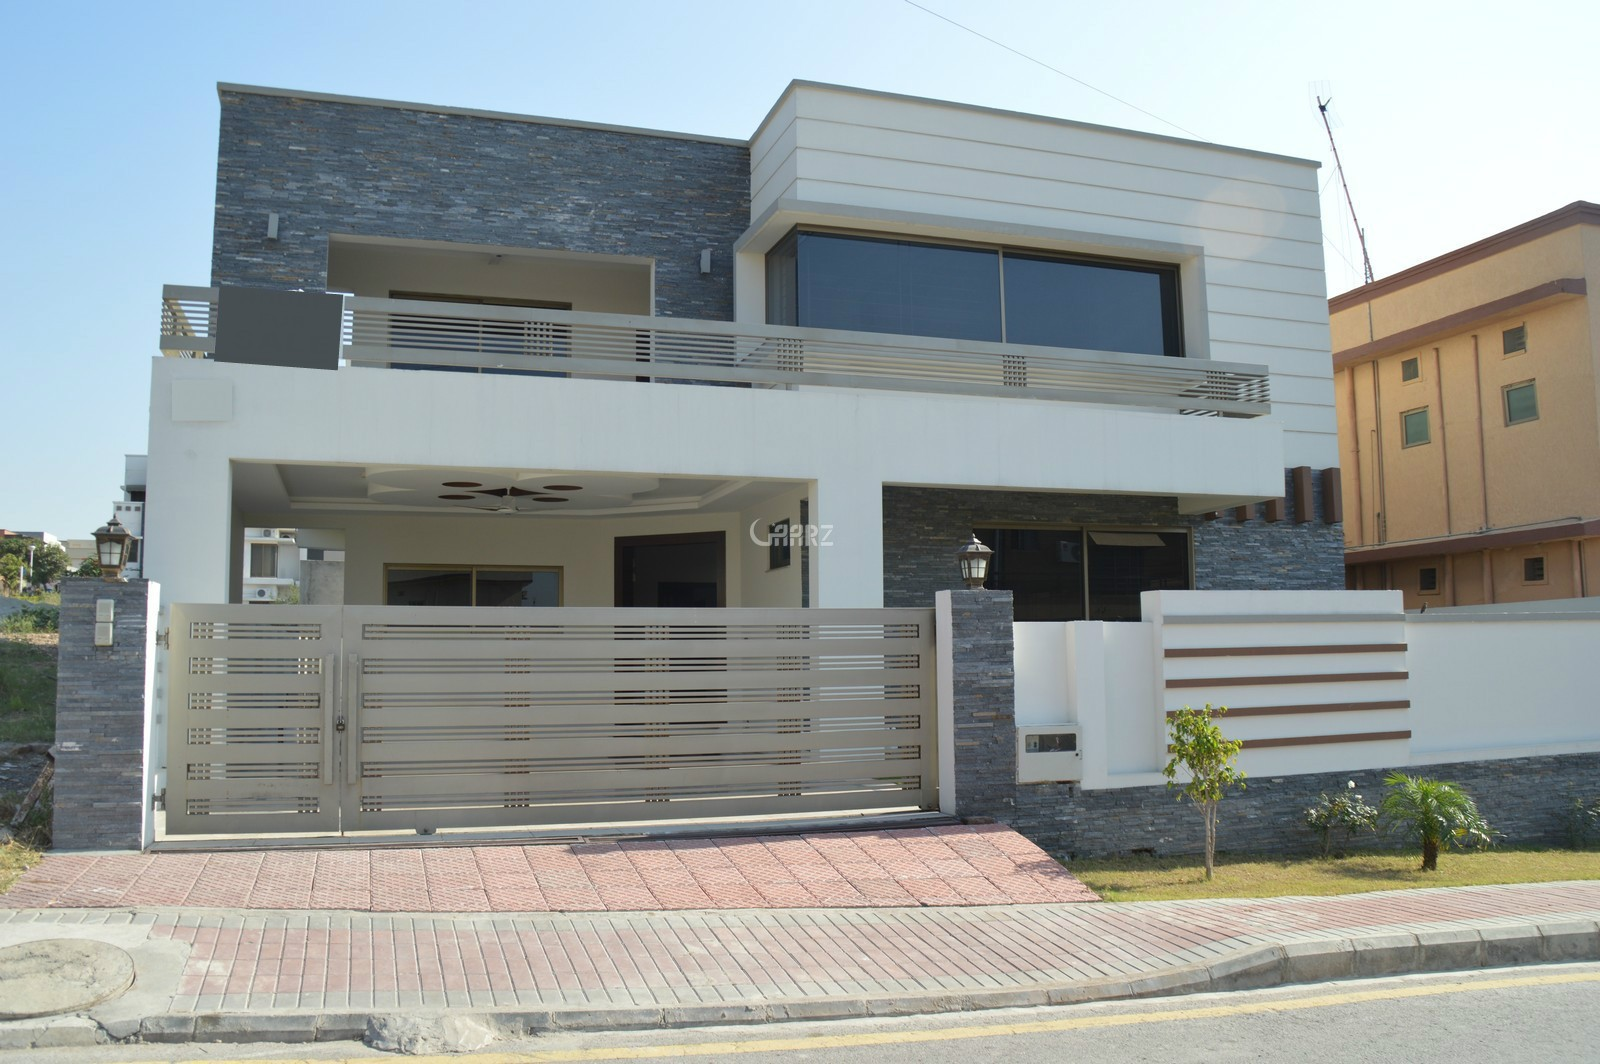 1 Kanal Bungalow for Sale in Islamabad F-11/1